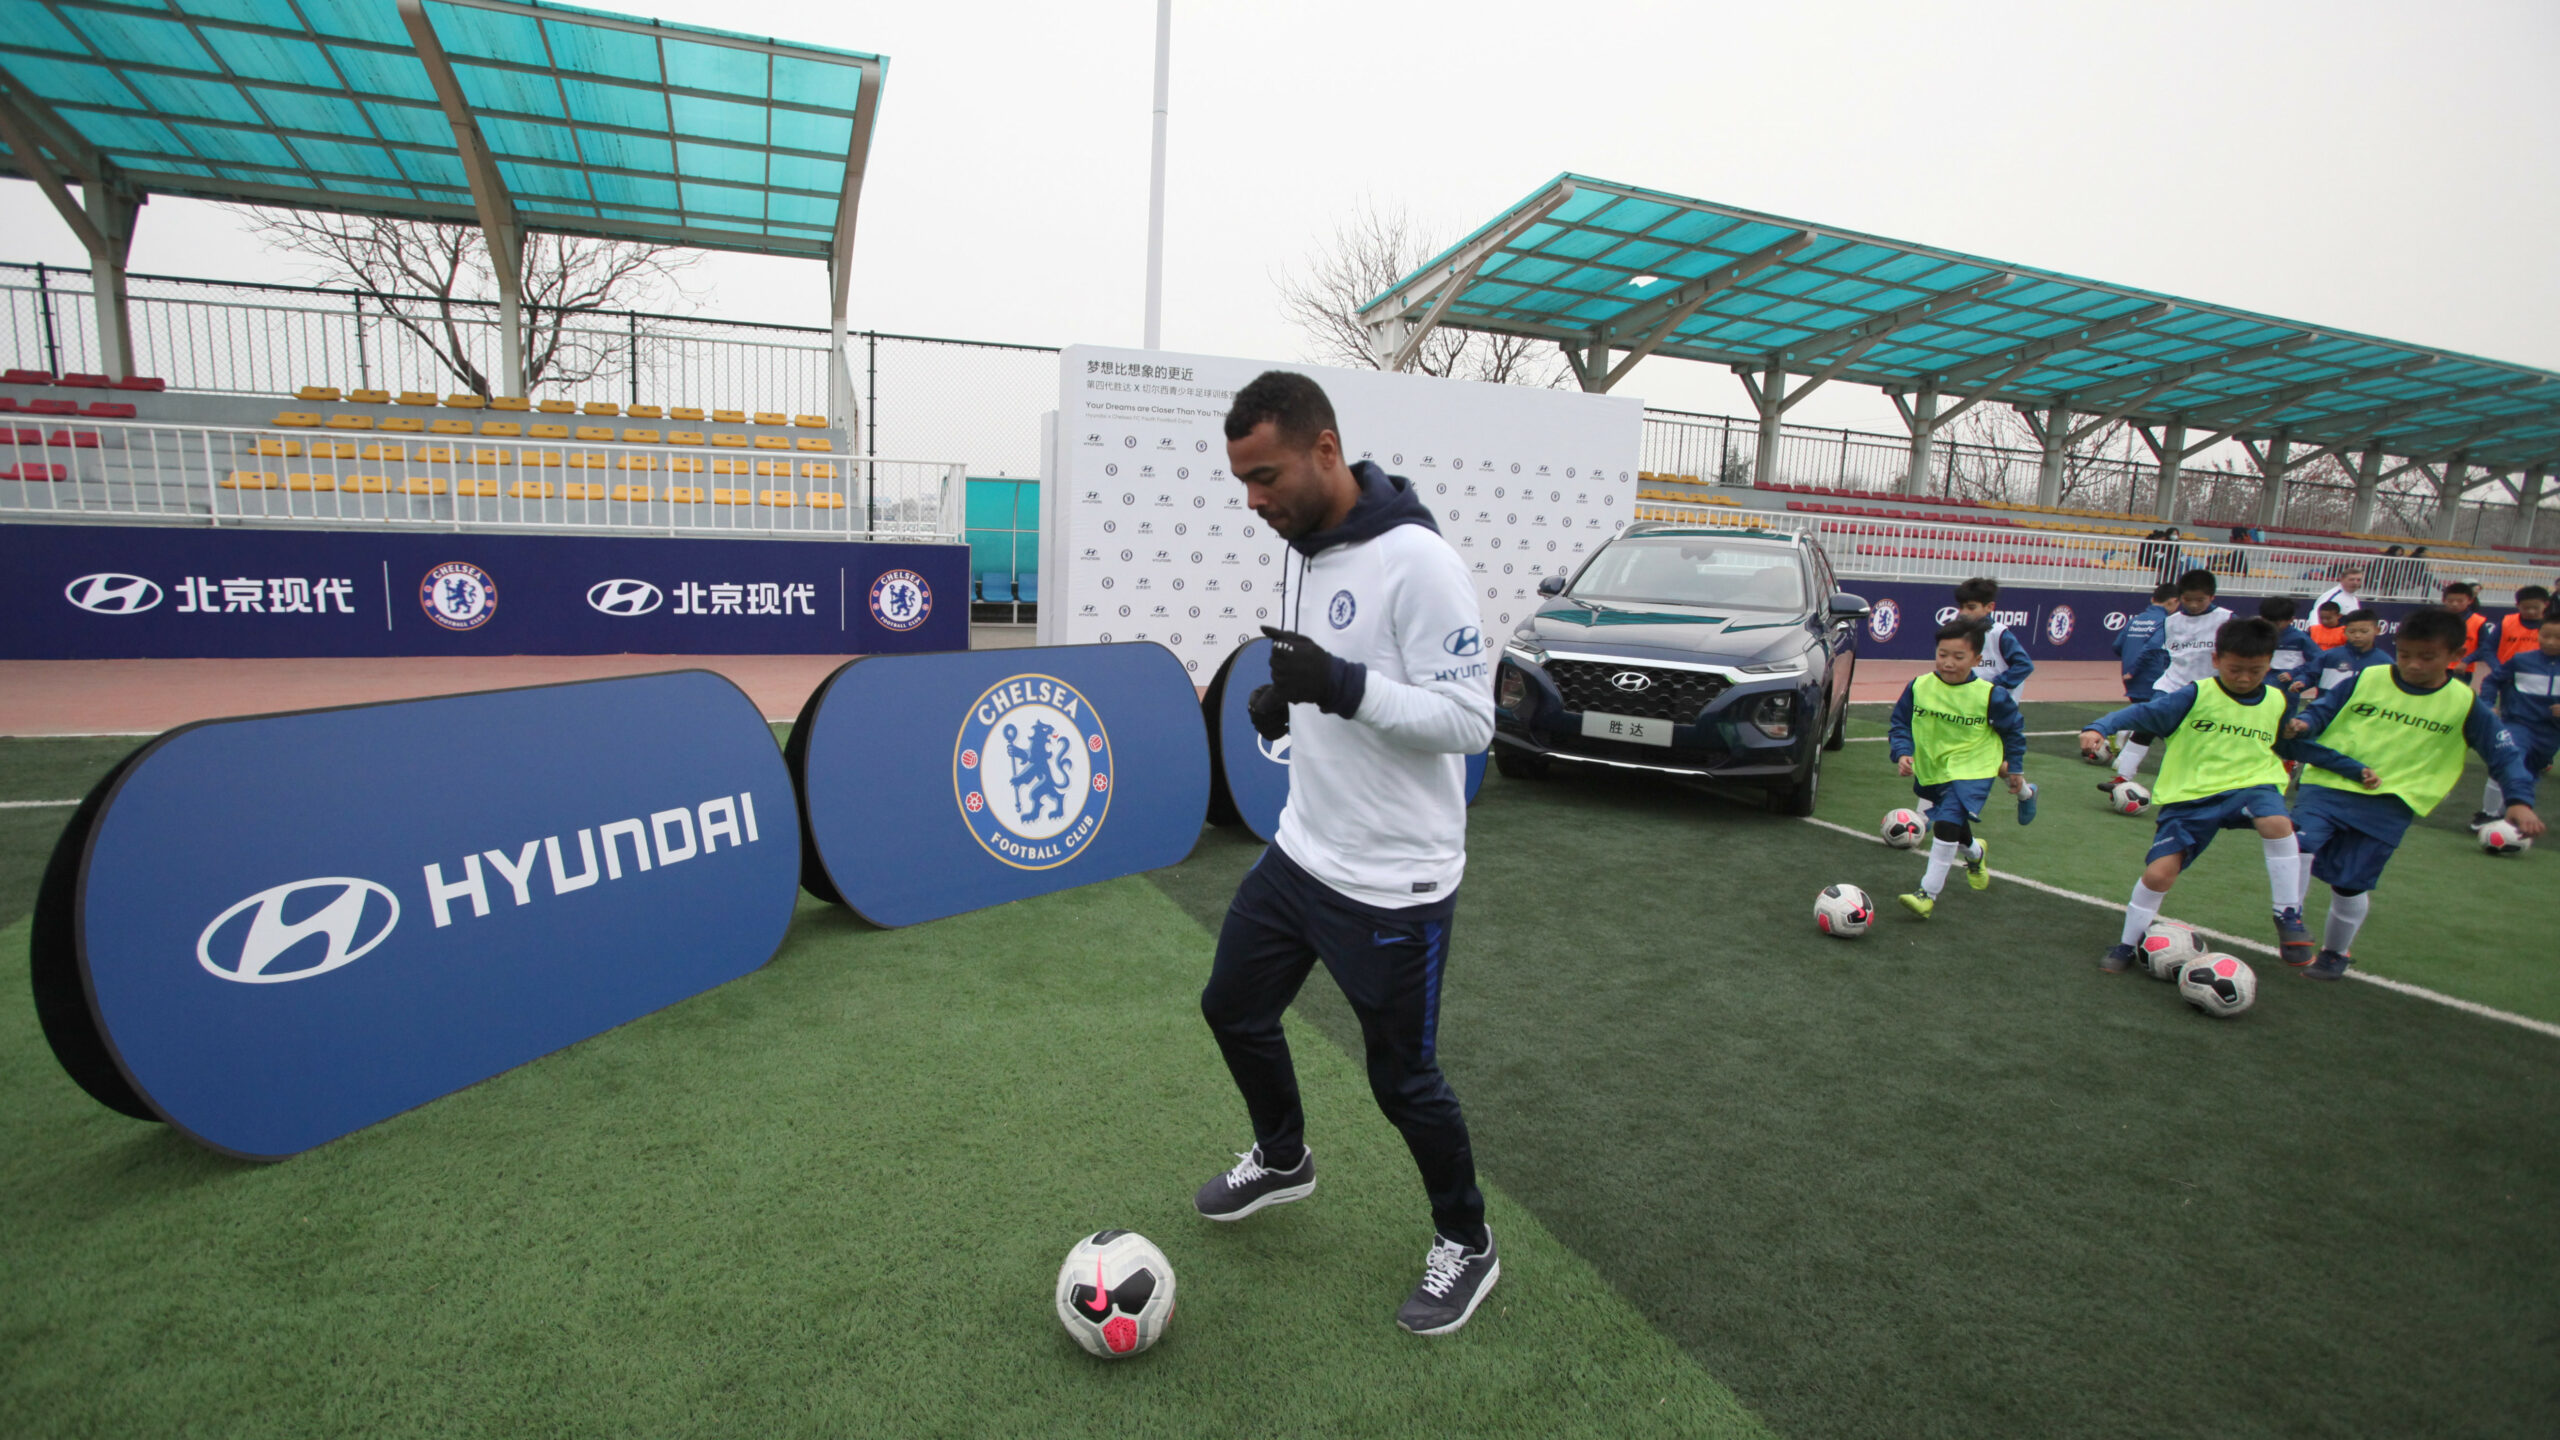 Hyundai Motor Conducts Youth Football Camp in Beijing with Chelsea ...